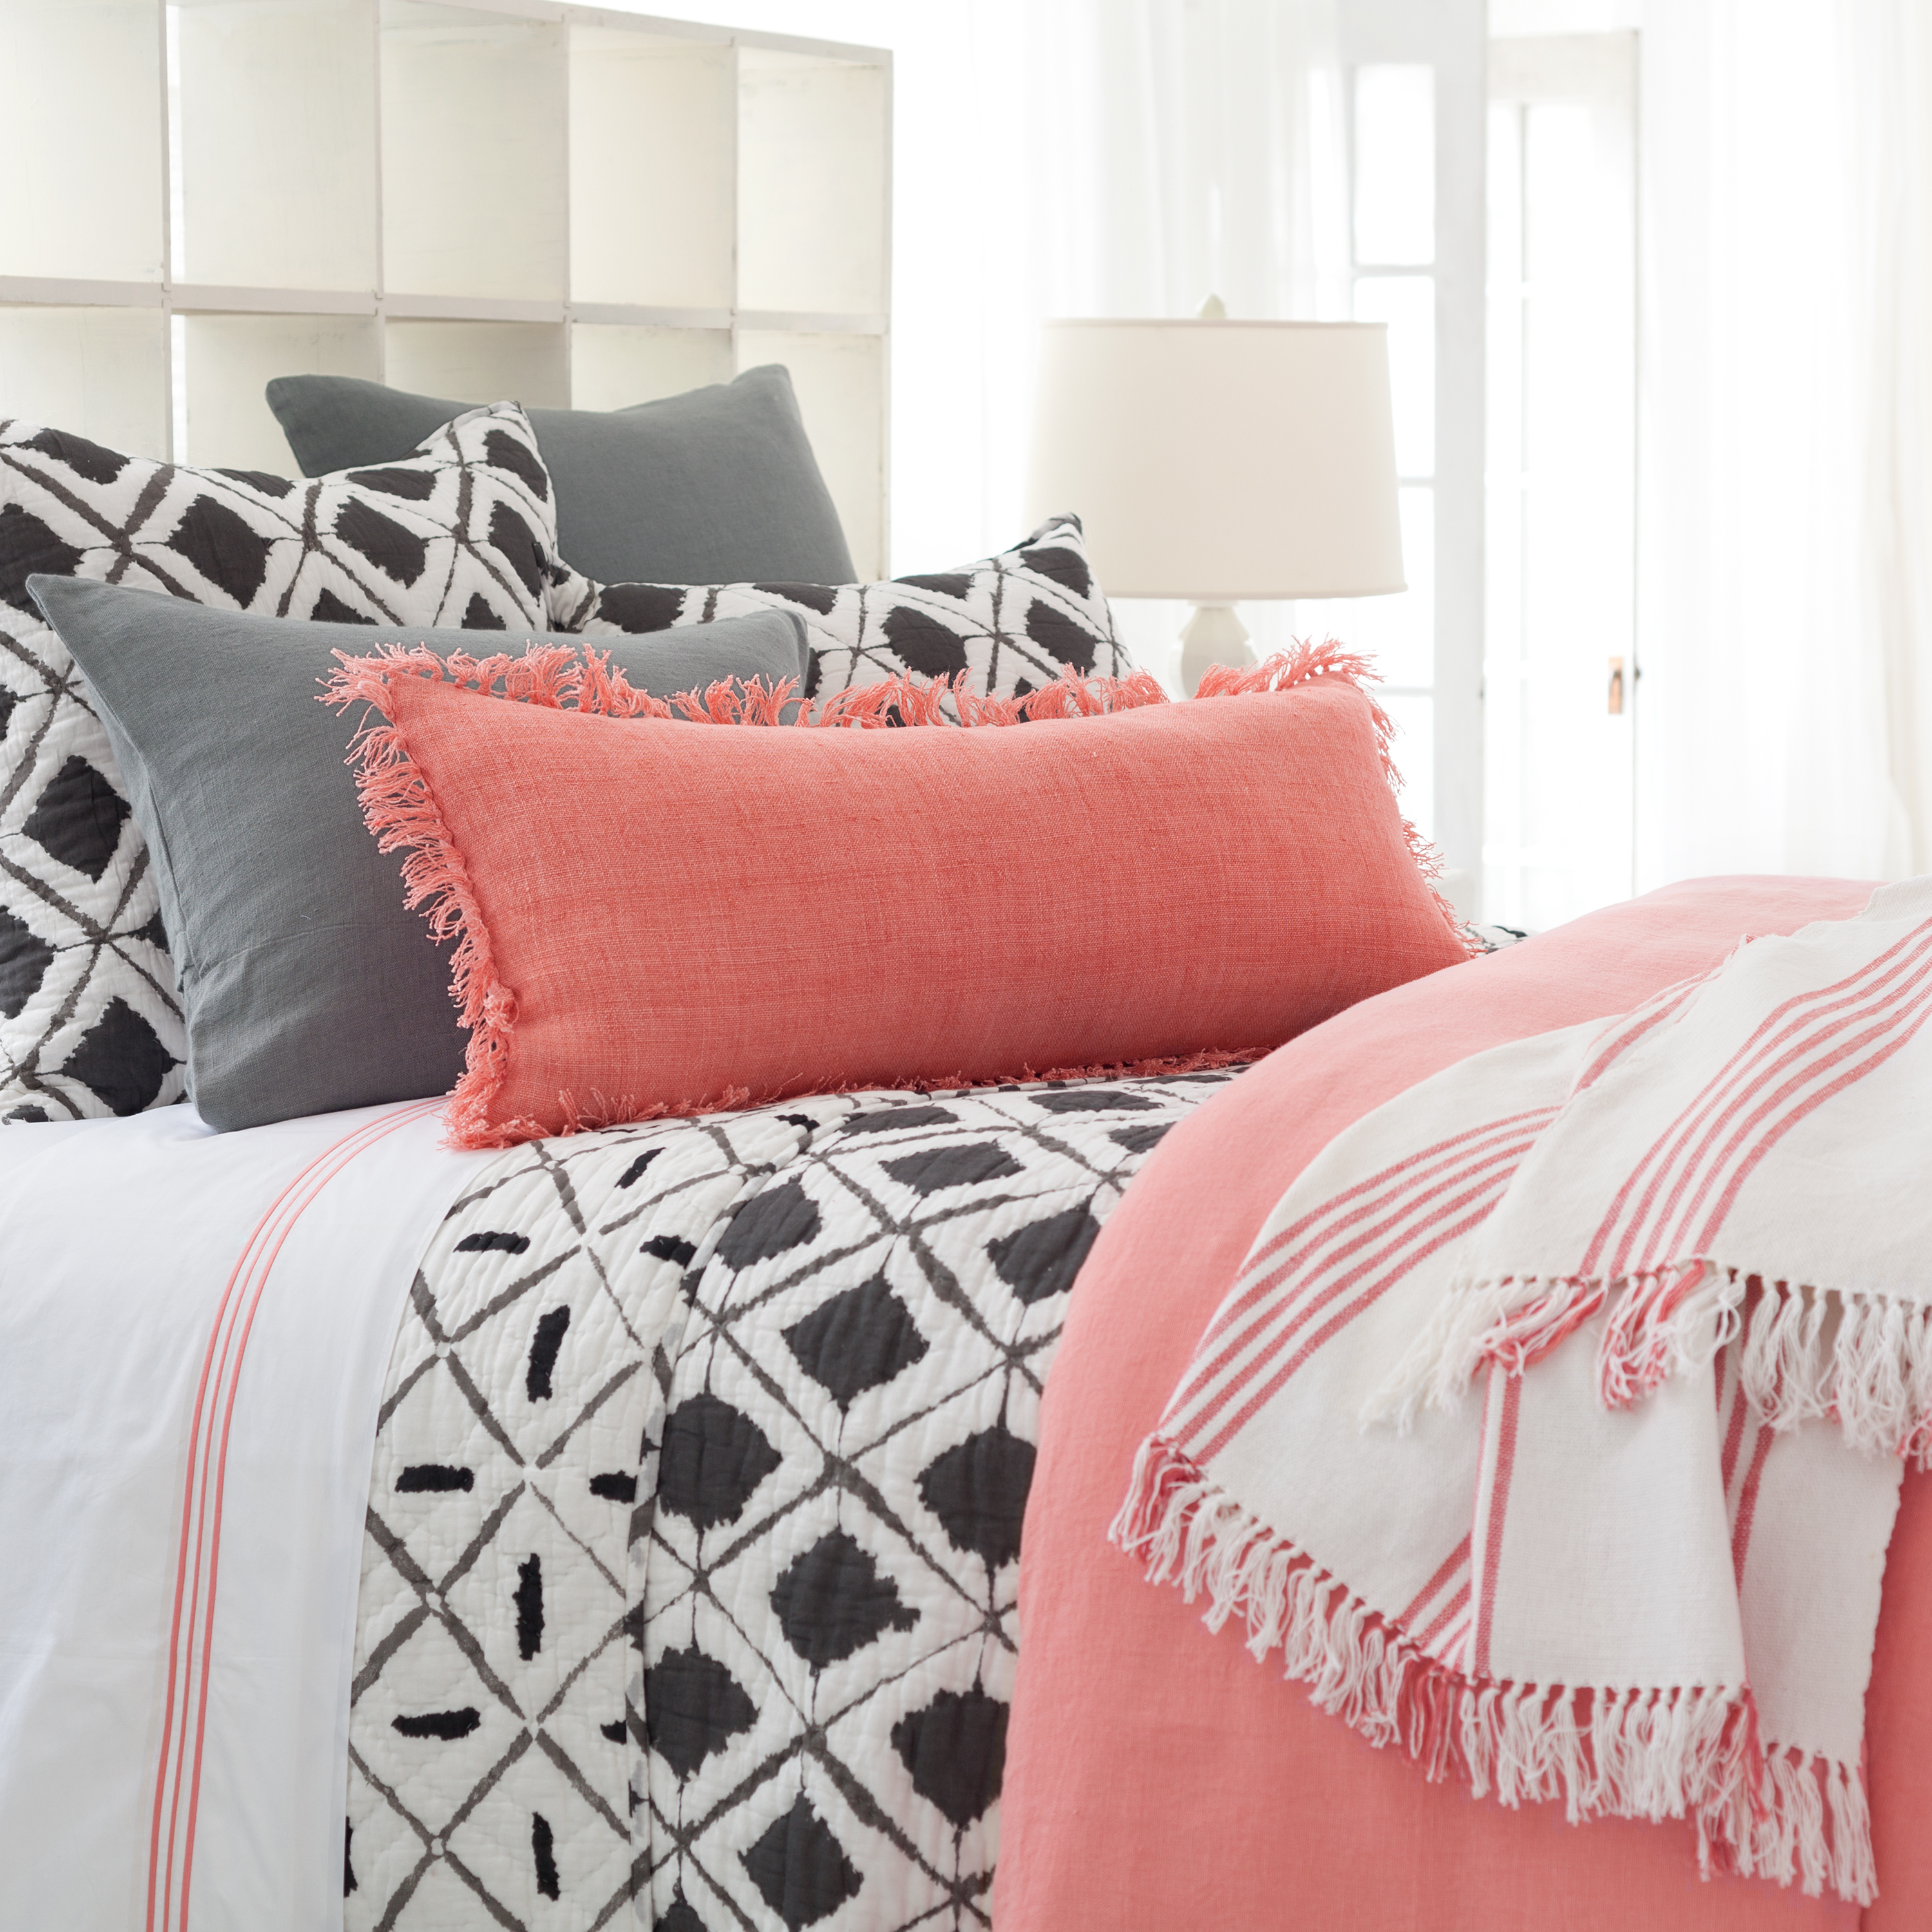 67fce7e5921 Let's Get Graphic: Bold Prints for the Bedroom